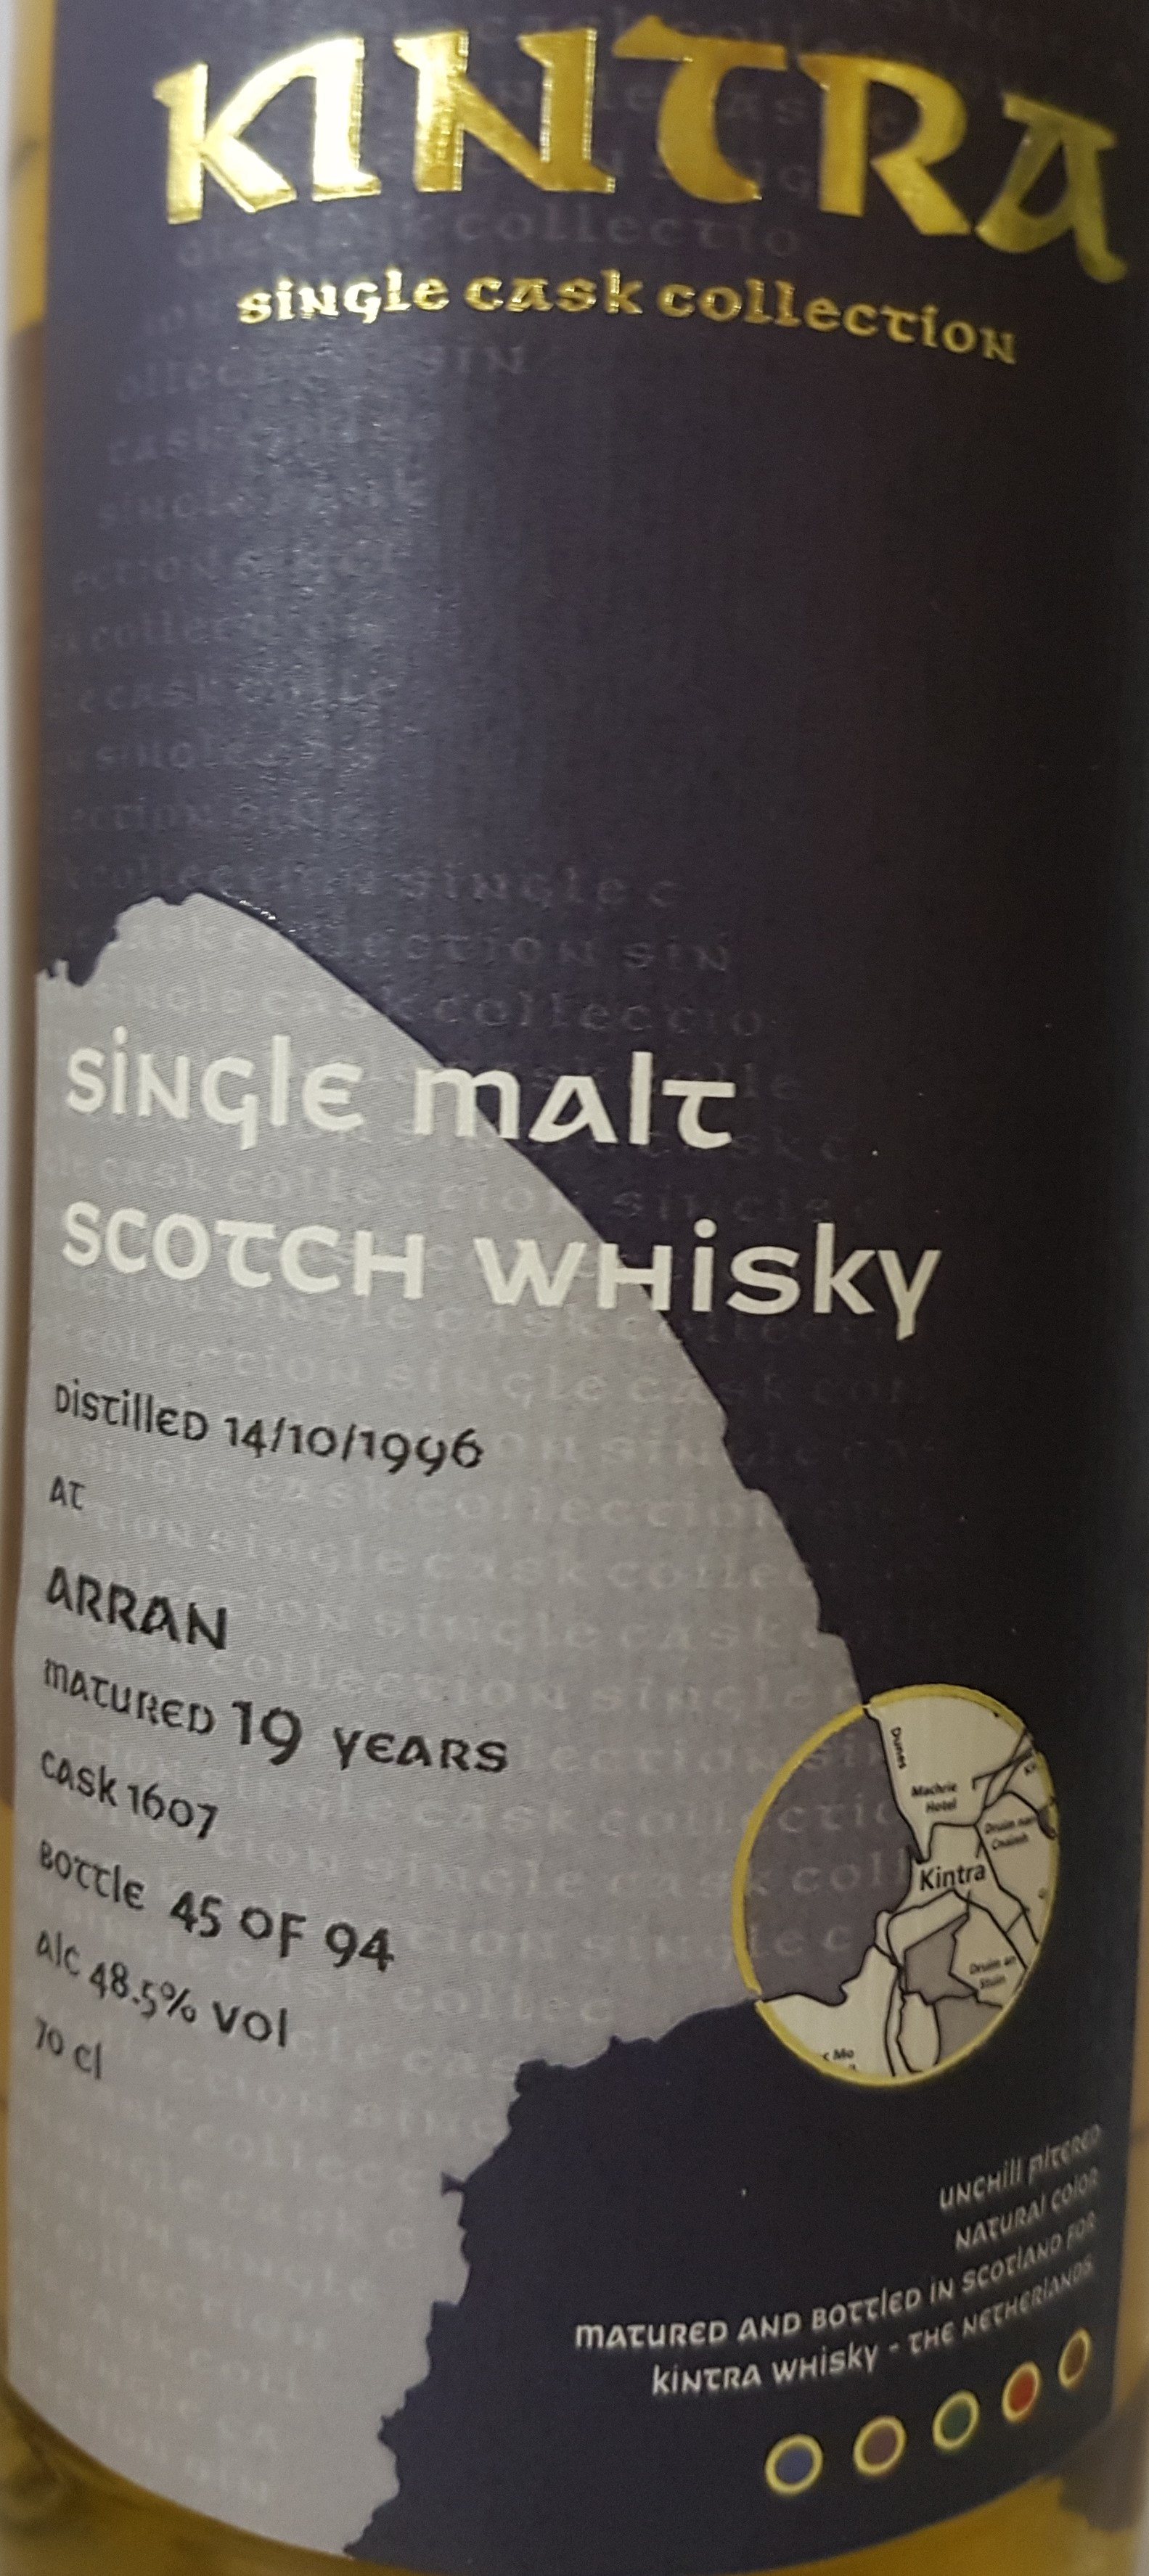 Arran kintra 19 yrs Tube